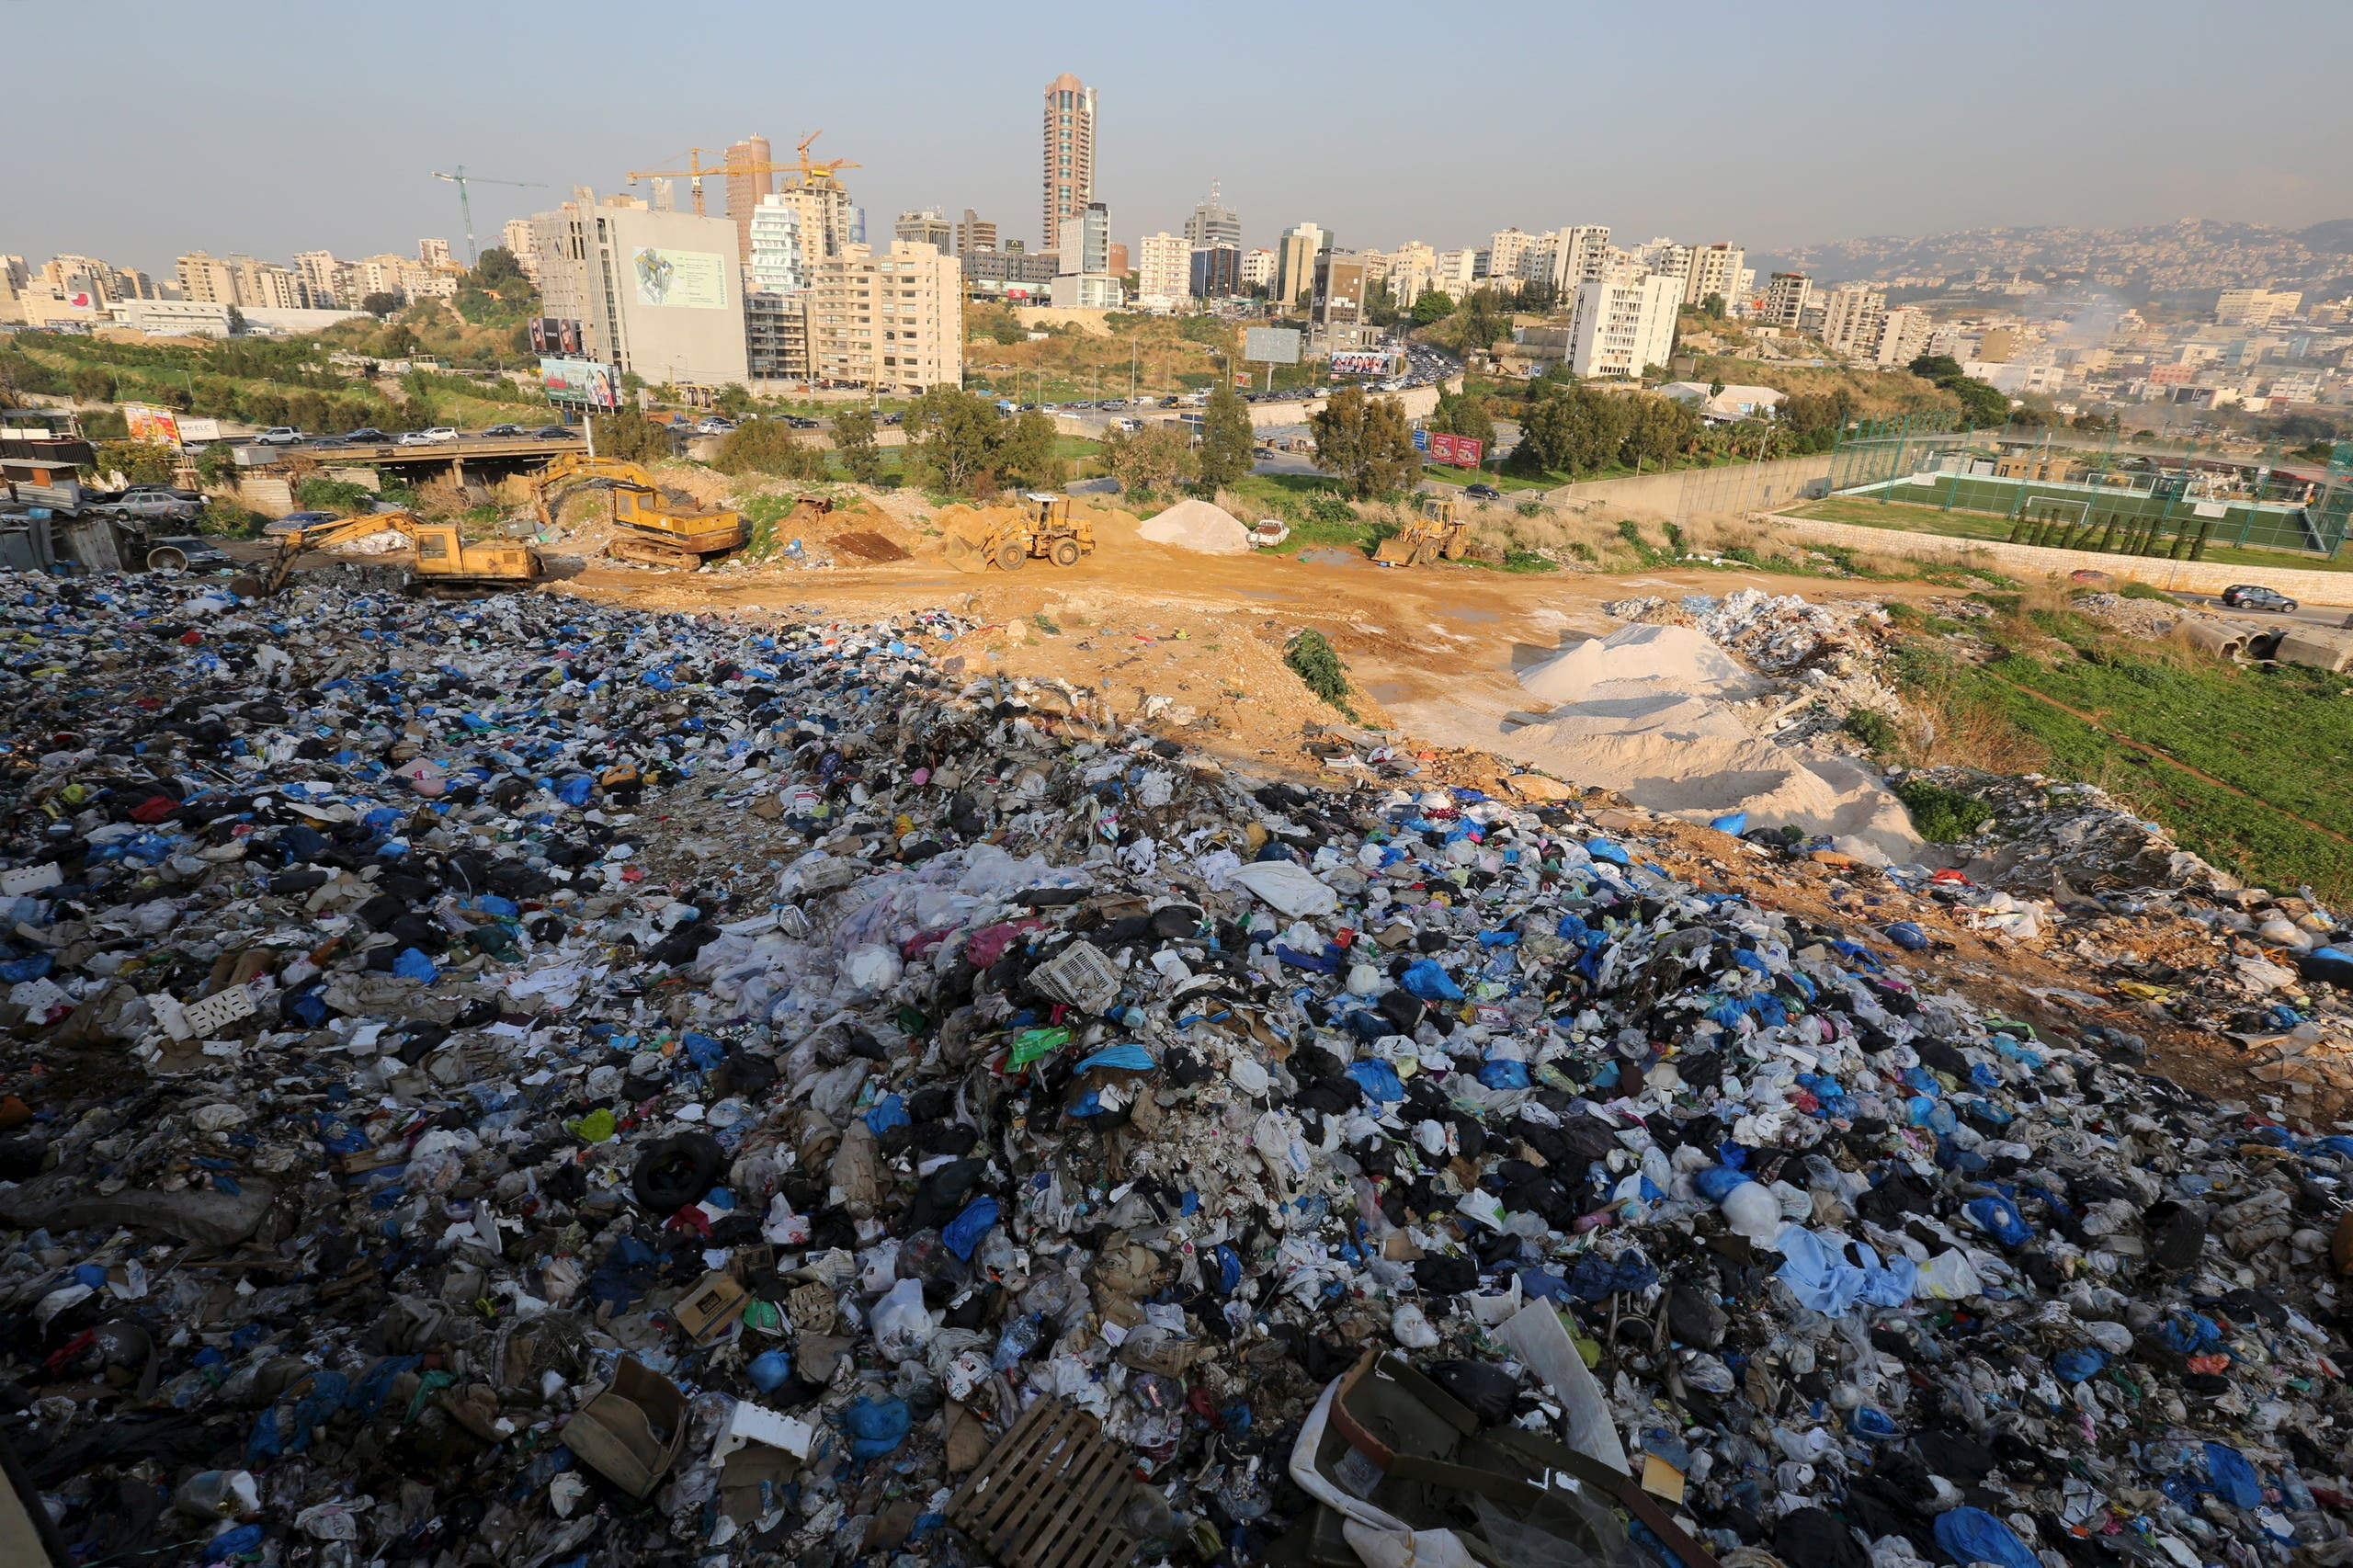 A general view shows a garbage-filled area in Beirut, Lebanon December 22, 2015. (File photo: Reuters)